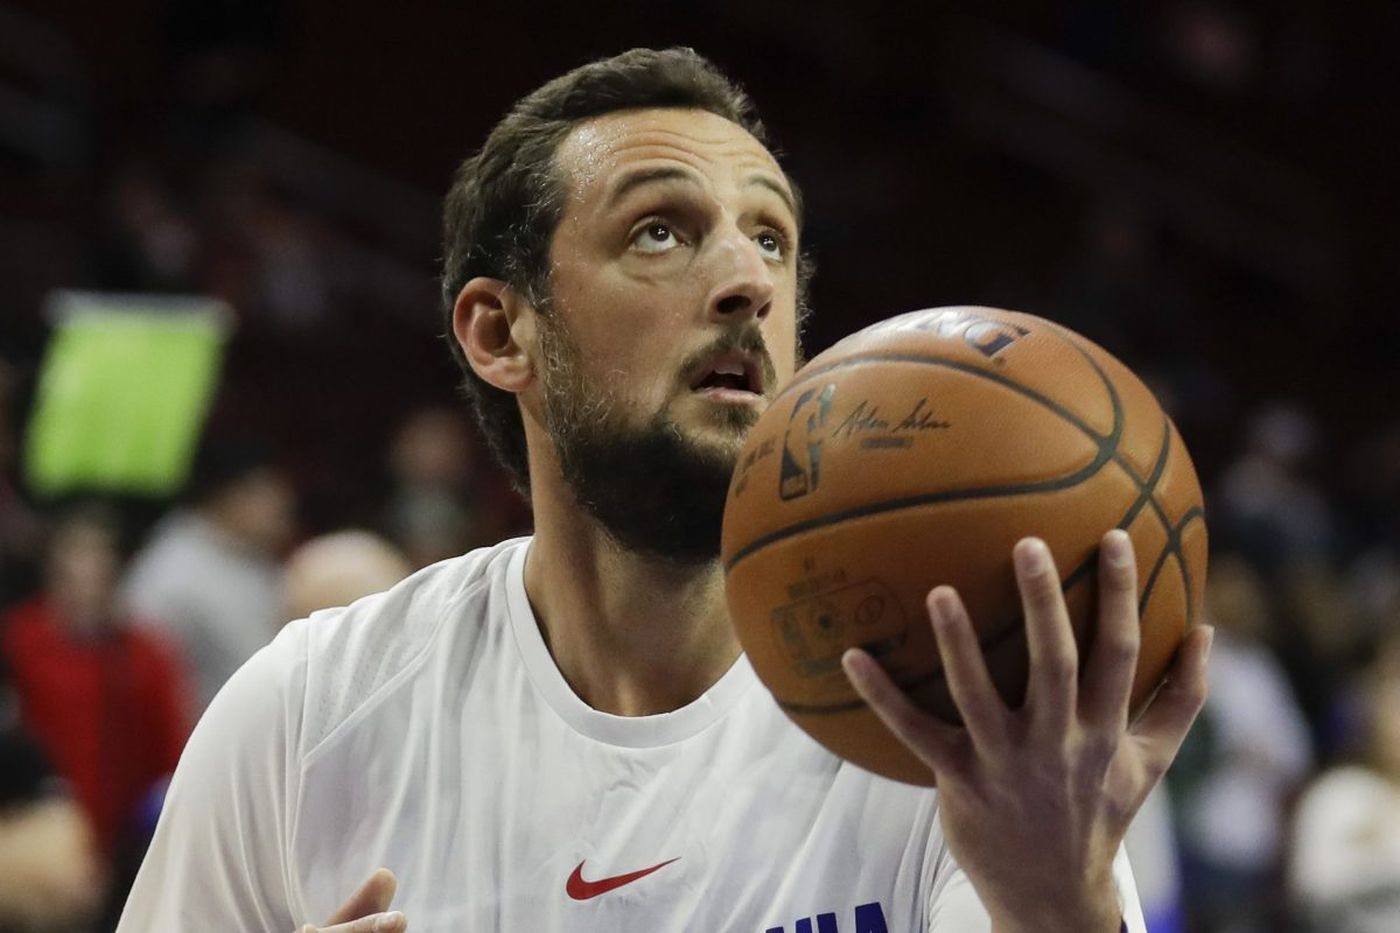 Marco Belinelli wants Sixers to set the tone early in Game 2